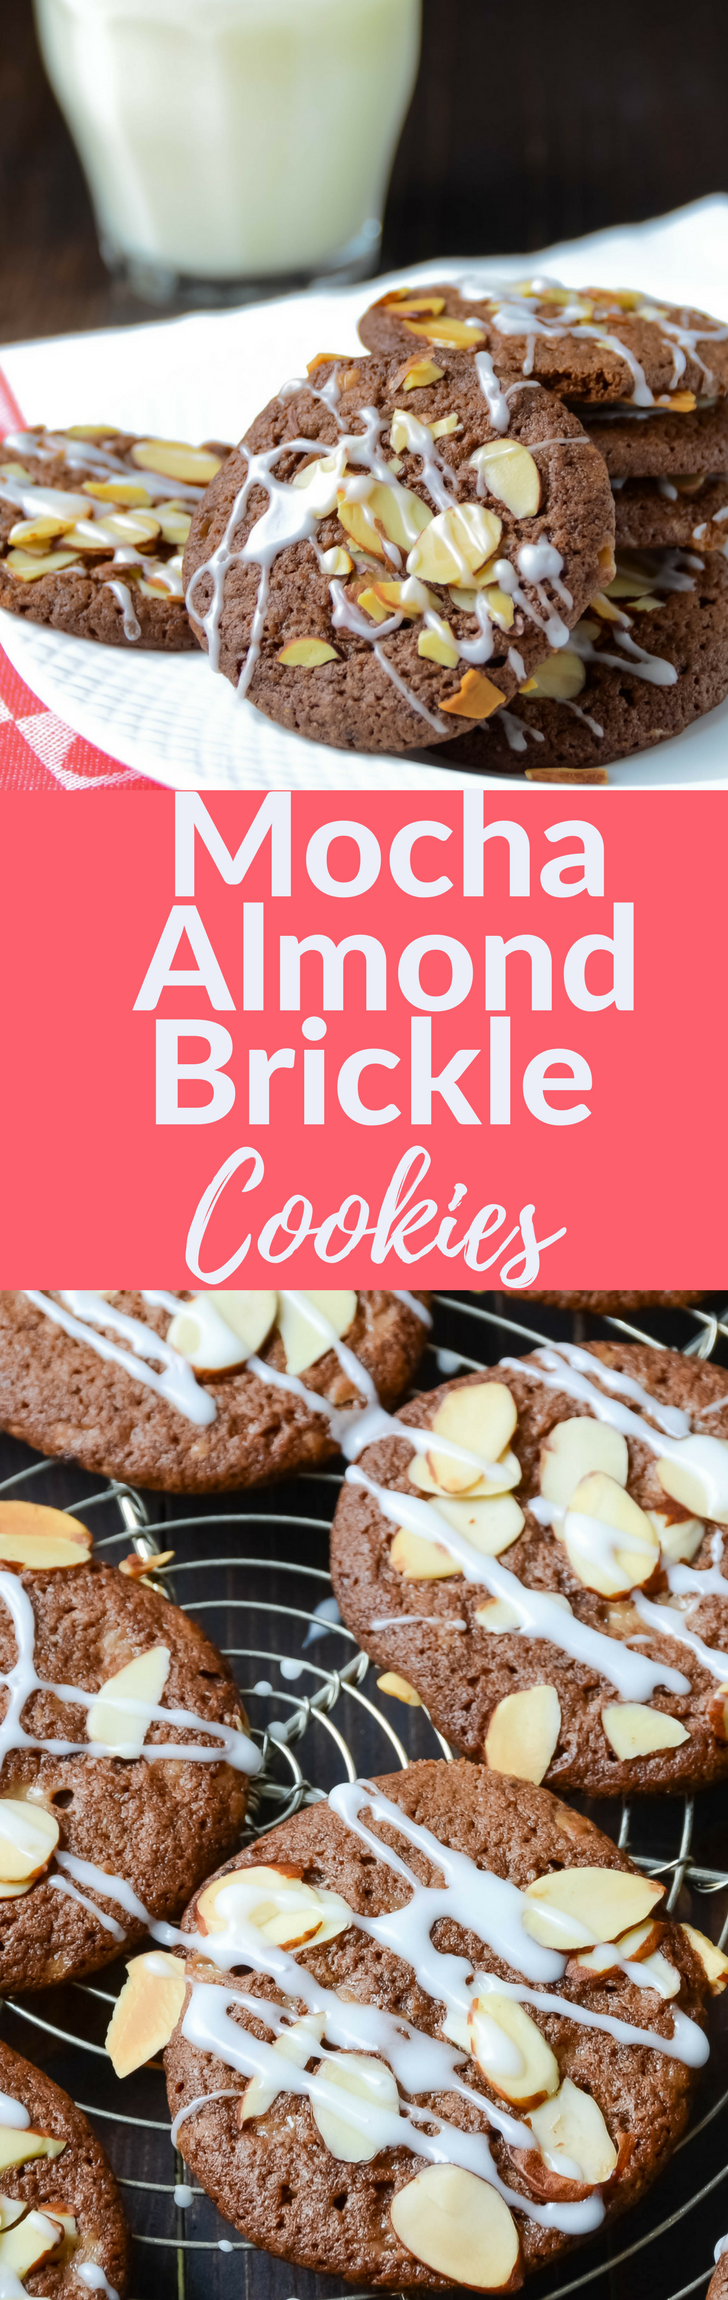 Need a simple chocolate cookie recipe: Mocha Almond Brickle Cookies are chocolatey and crispy with a bit o' brickle, sliced almonds and a drizzle of glaze.